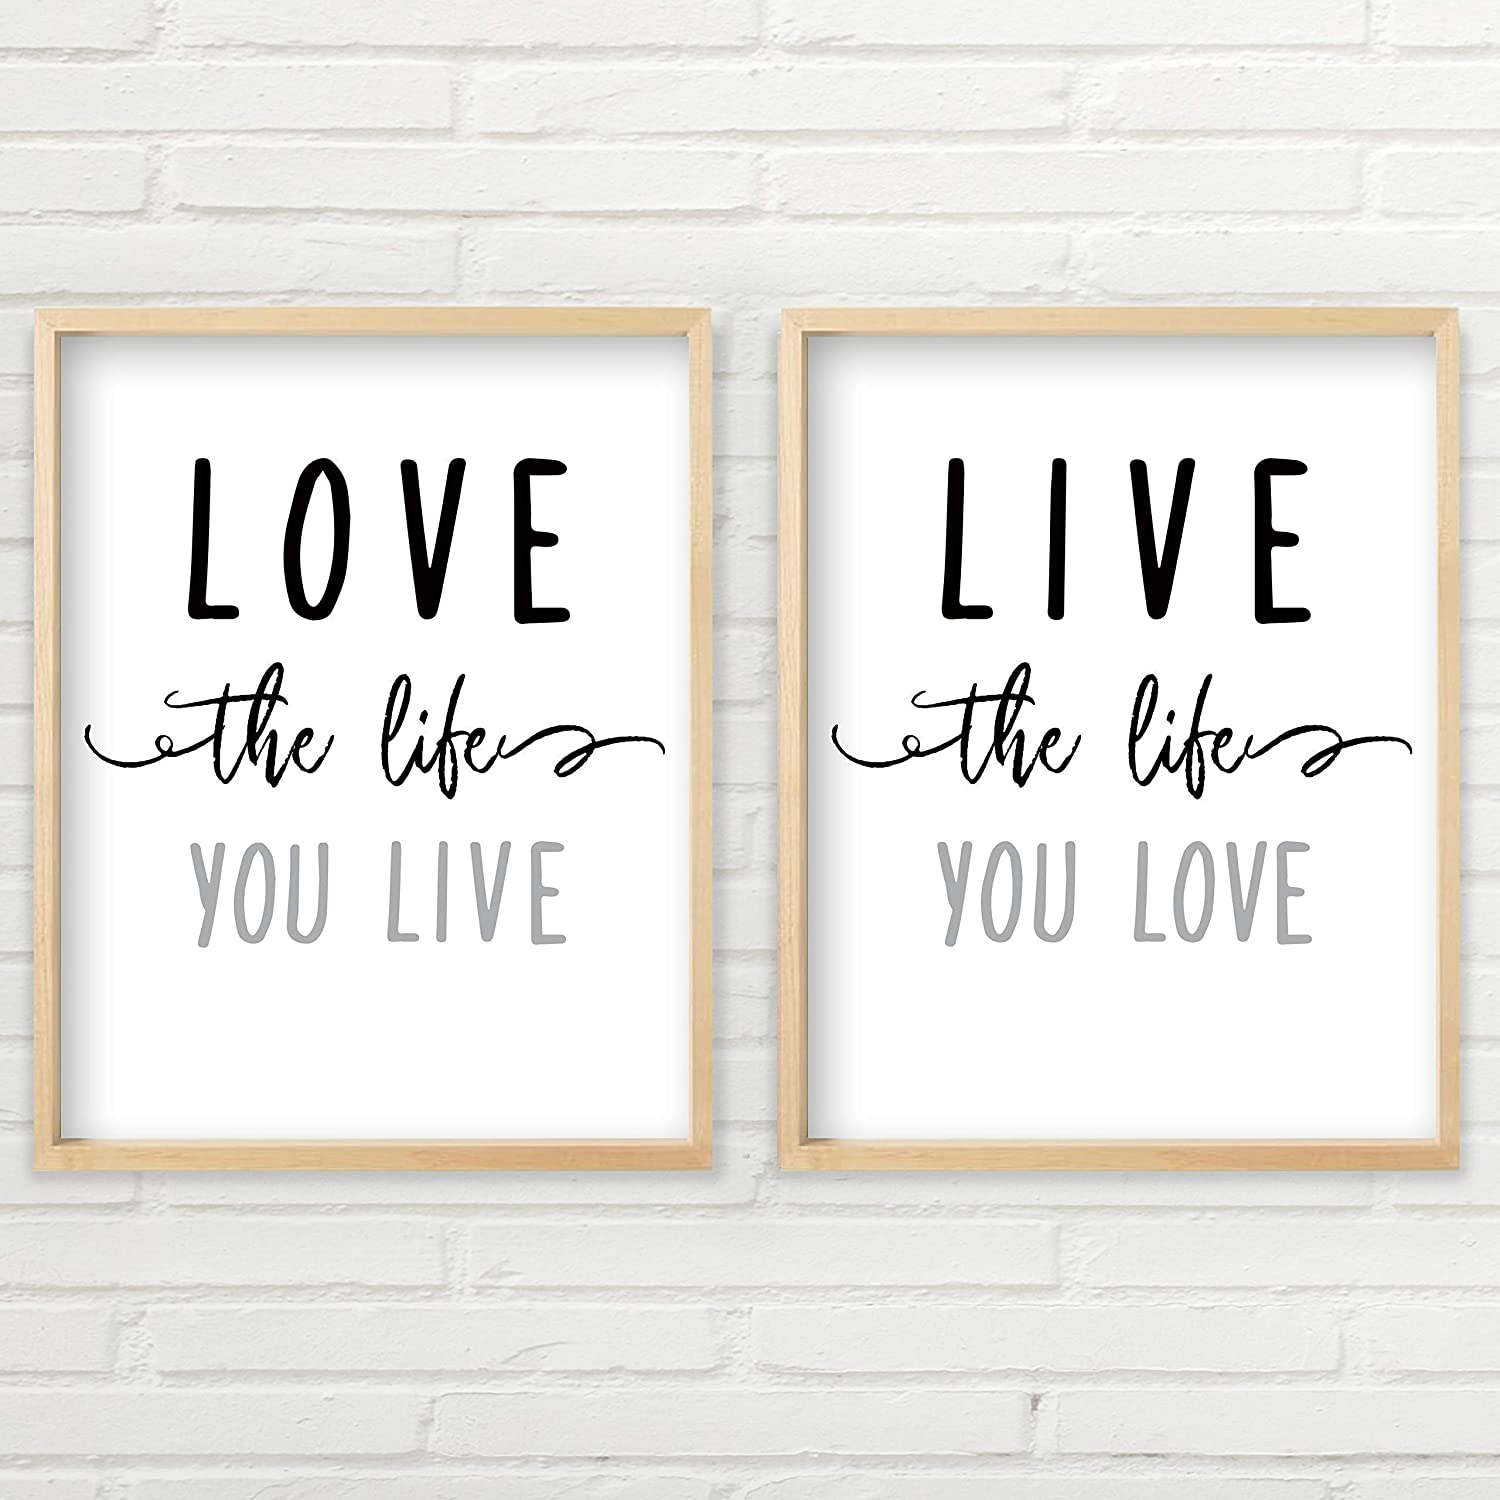 recycled felt paper 8x10 Final size with mat: 11\u201dx14 Love is Love Art Print 2 Illustration